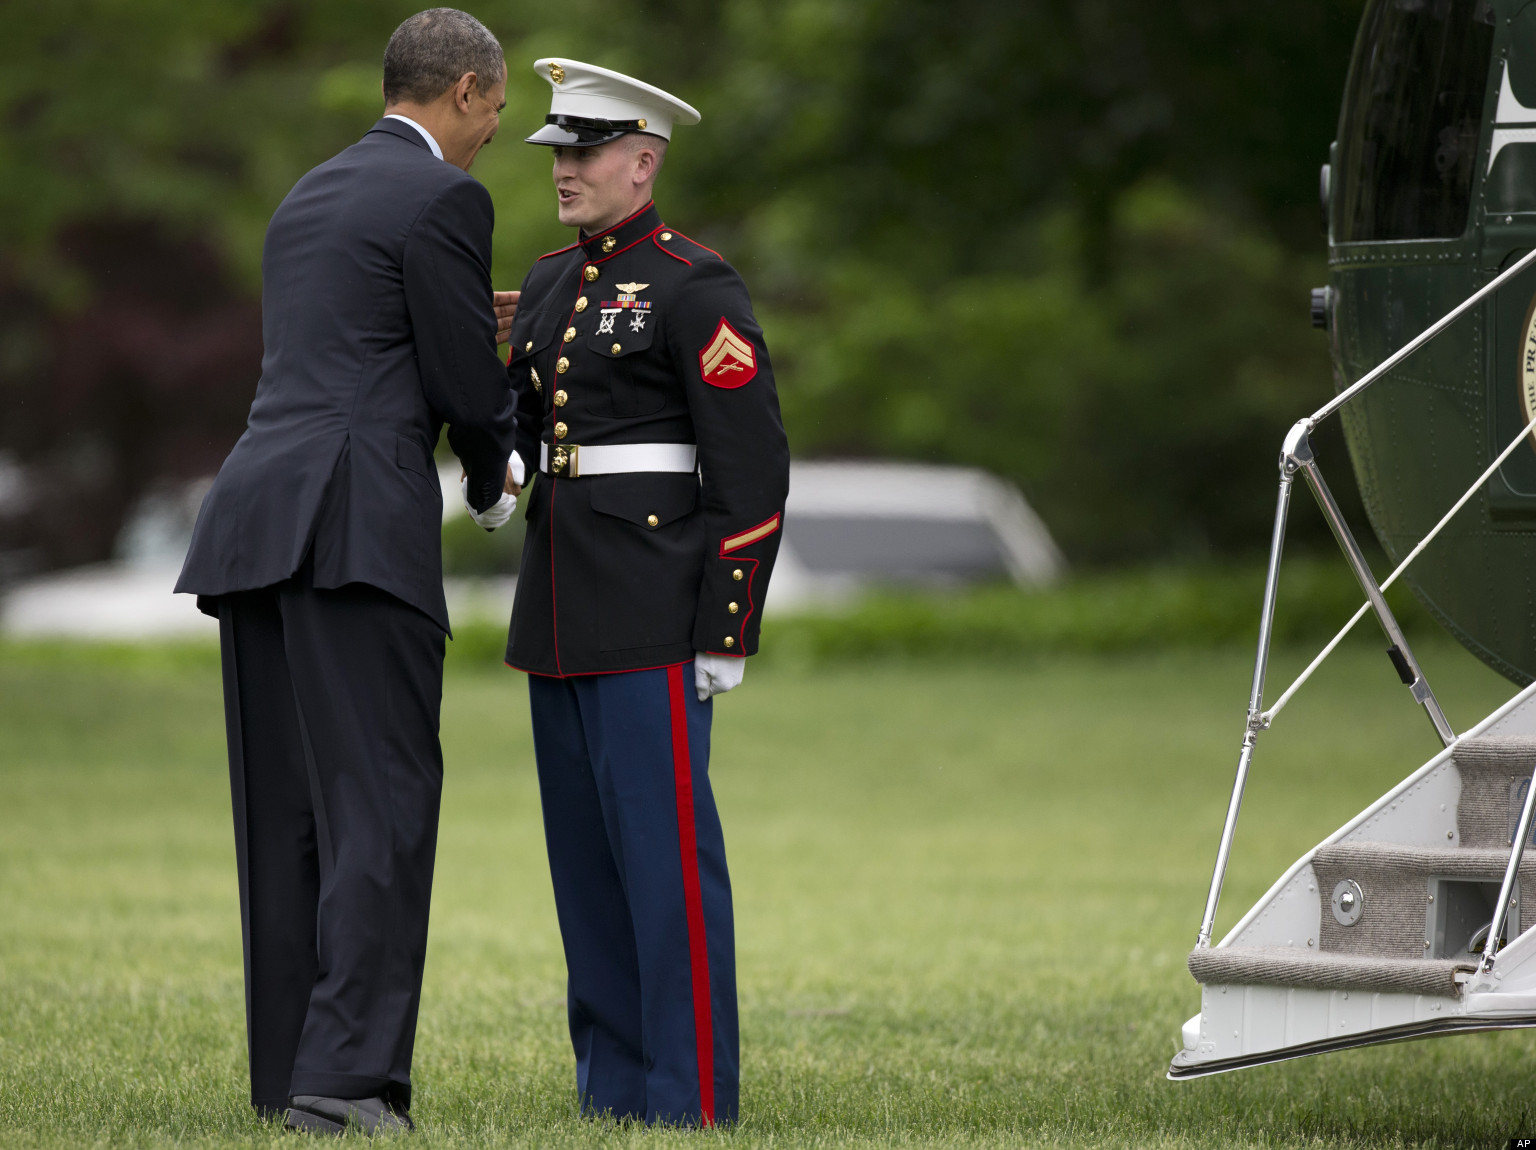 White house front yard images amp pictures becuo - Obama Forgets To Salute Marine Awkwardly Makes It Up To Him Huffpost